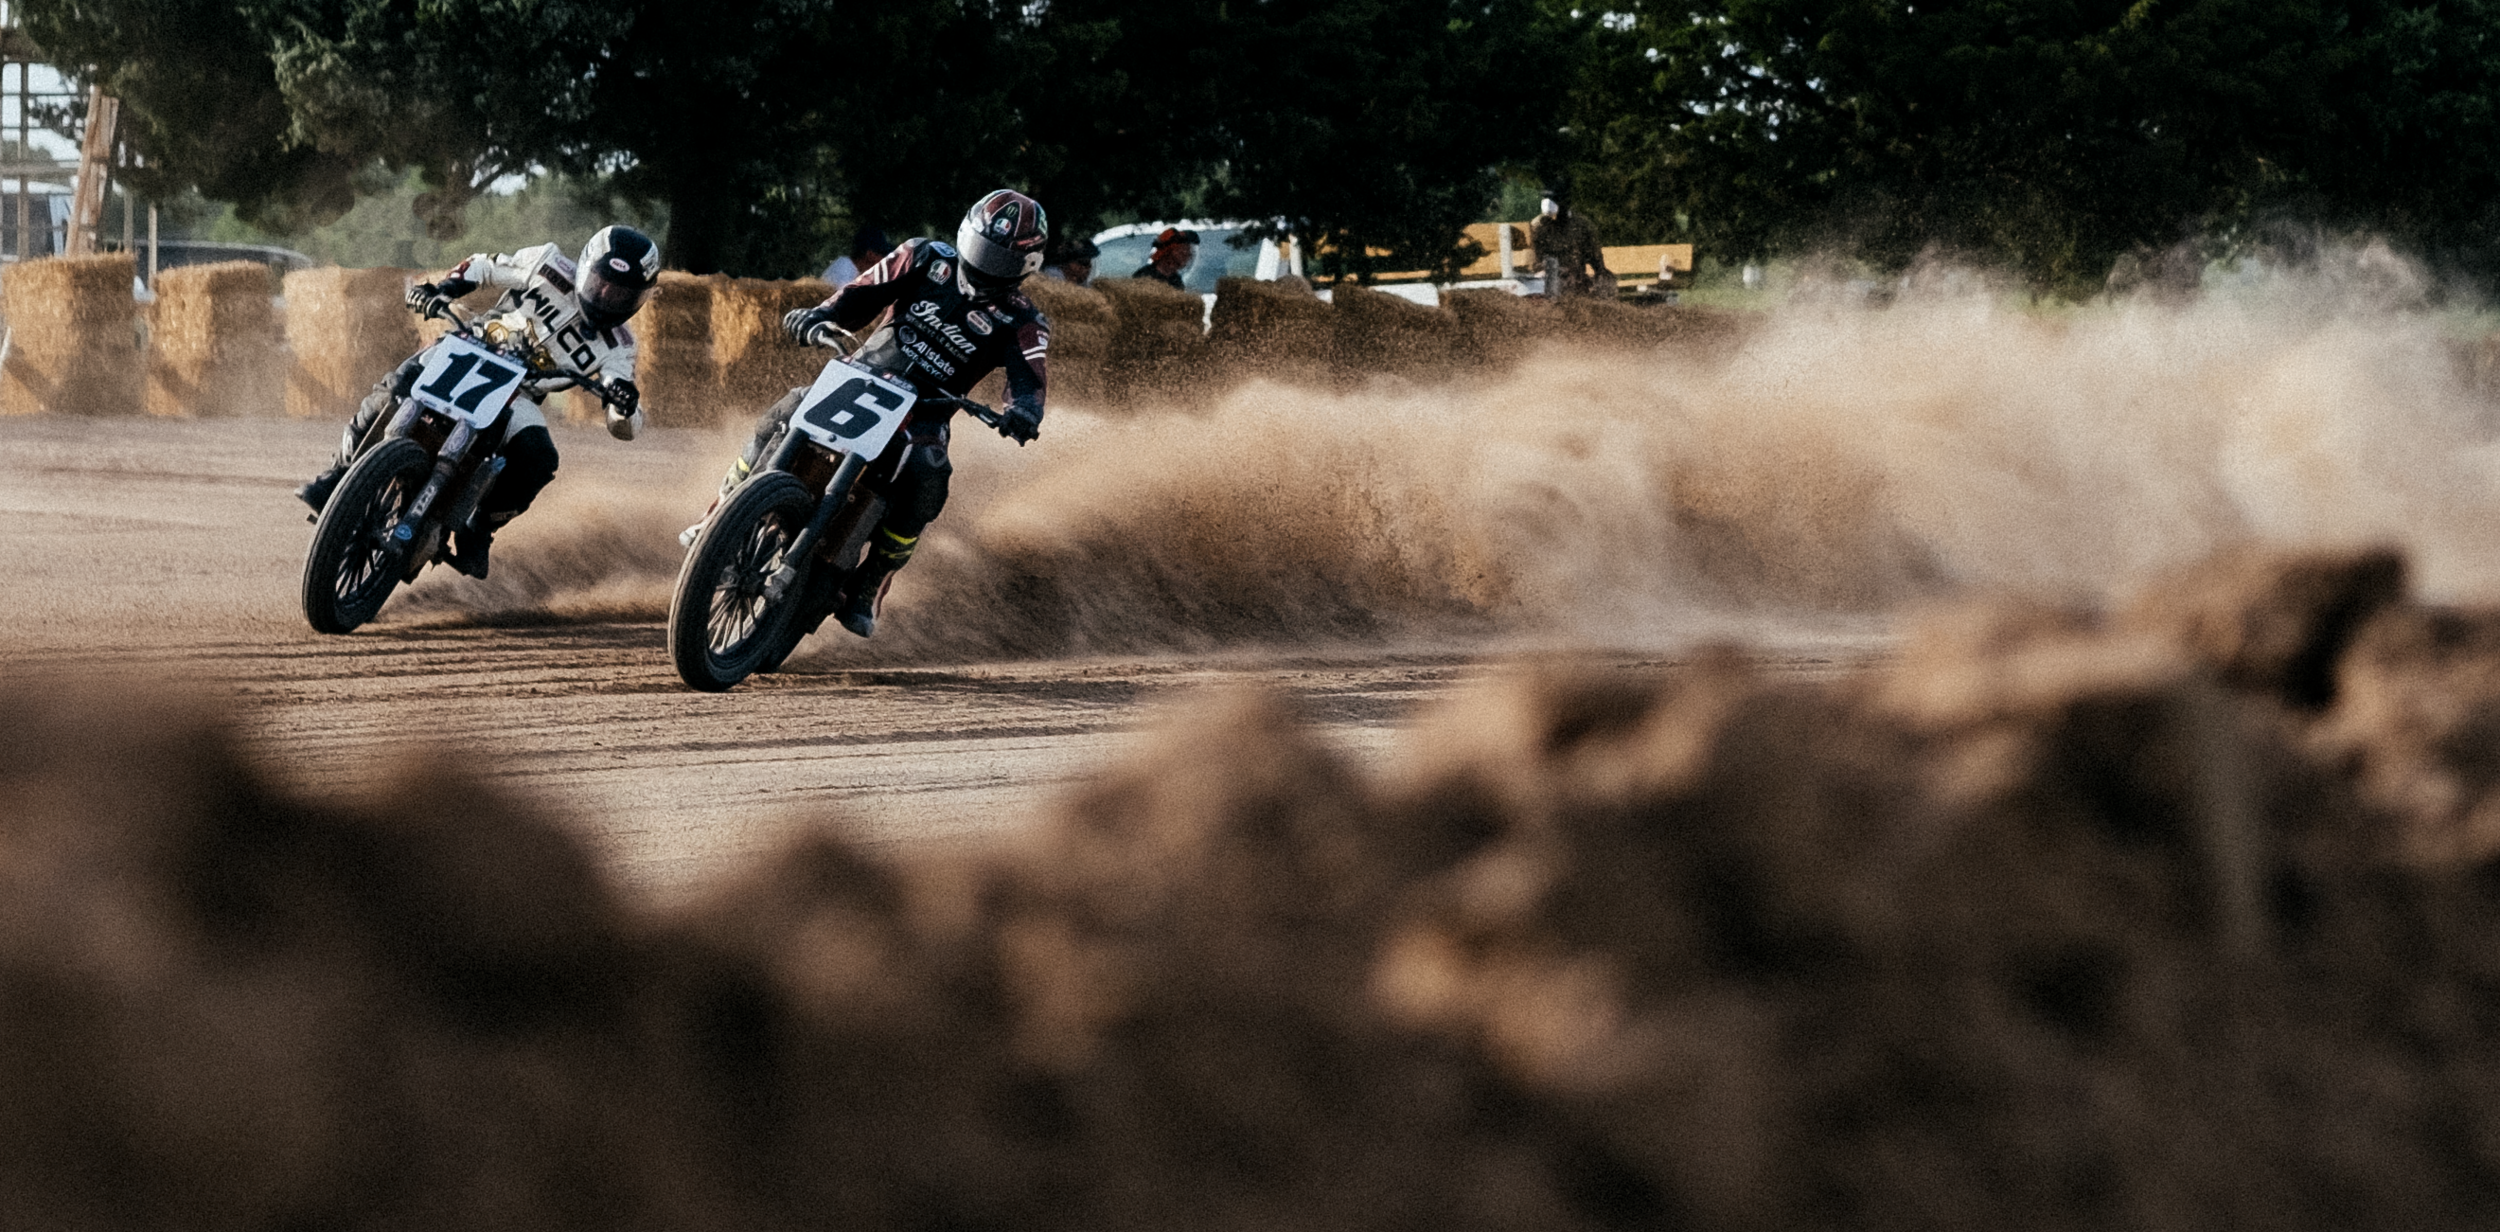 Racers Henry Wiles No. 17 and Brad Baker No. 6. Shot on the Fuji XT-2 35mm.